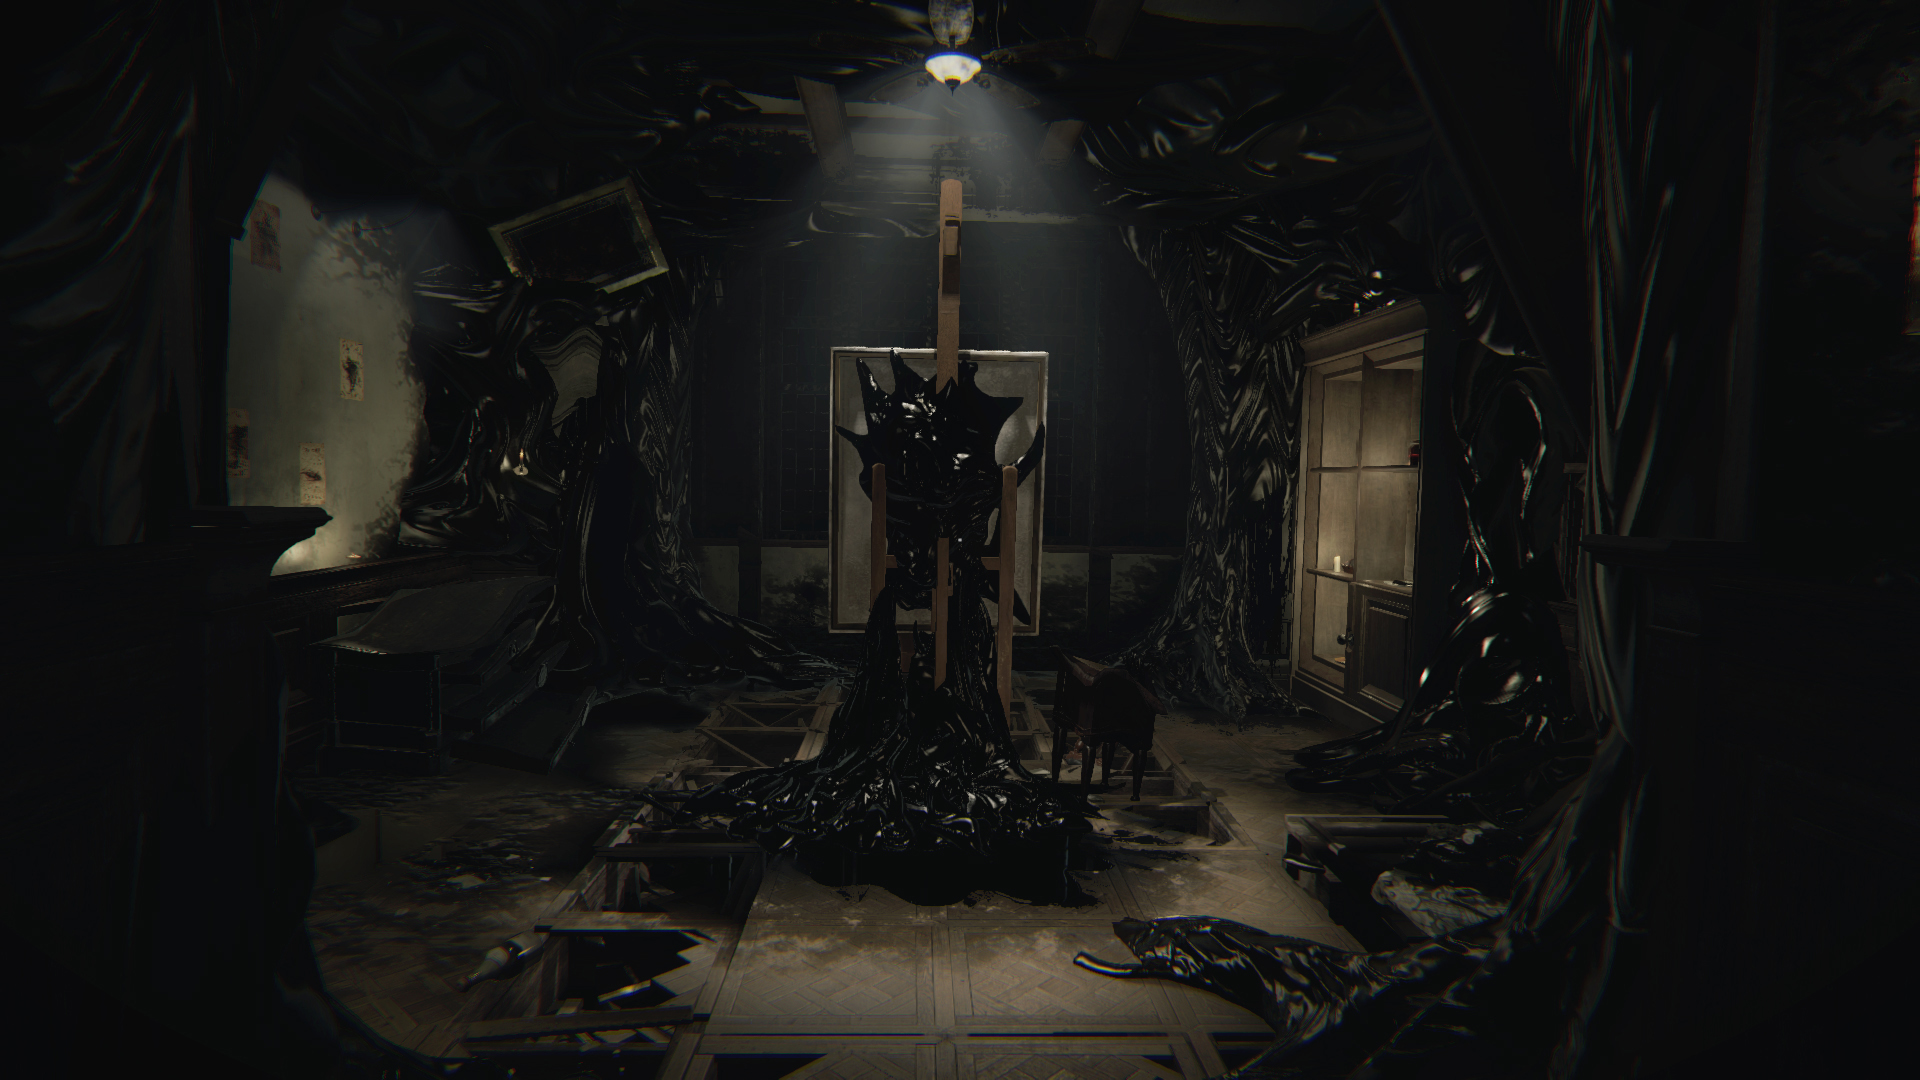 first-live-stream-youtube-layers-fear-ps4